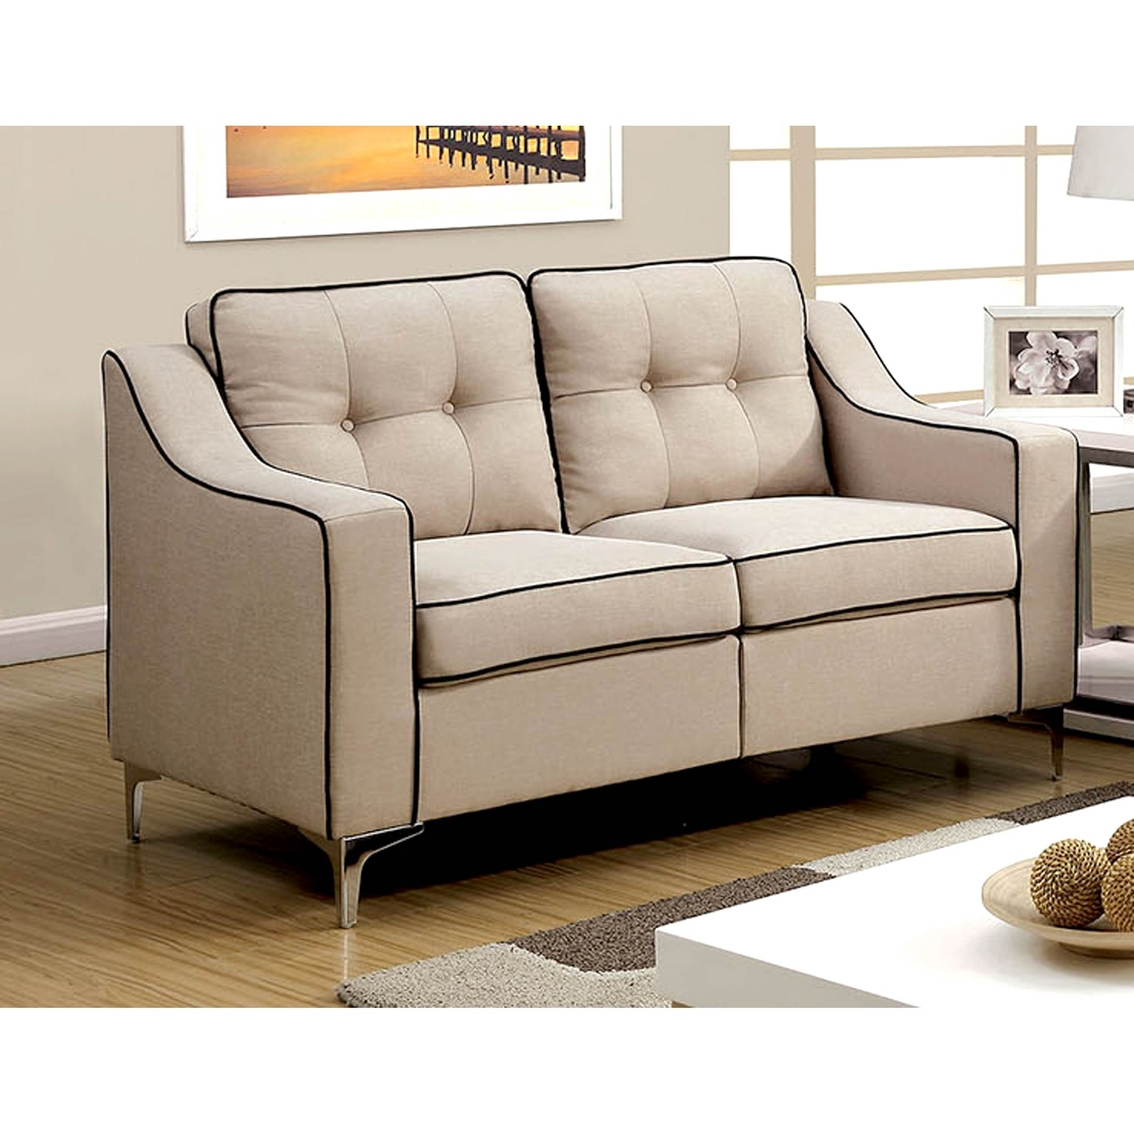 Furniture of america glenda loveseat sofas couches for Furniture exchange